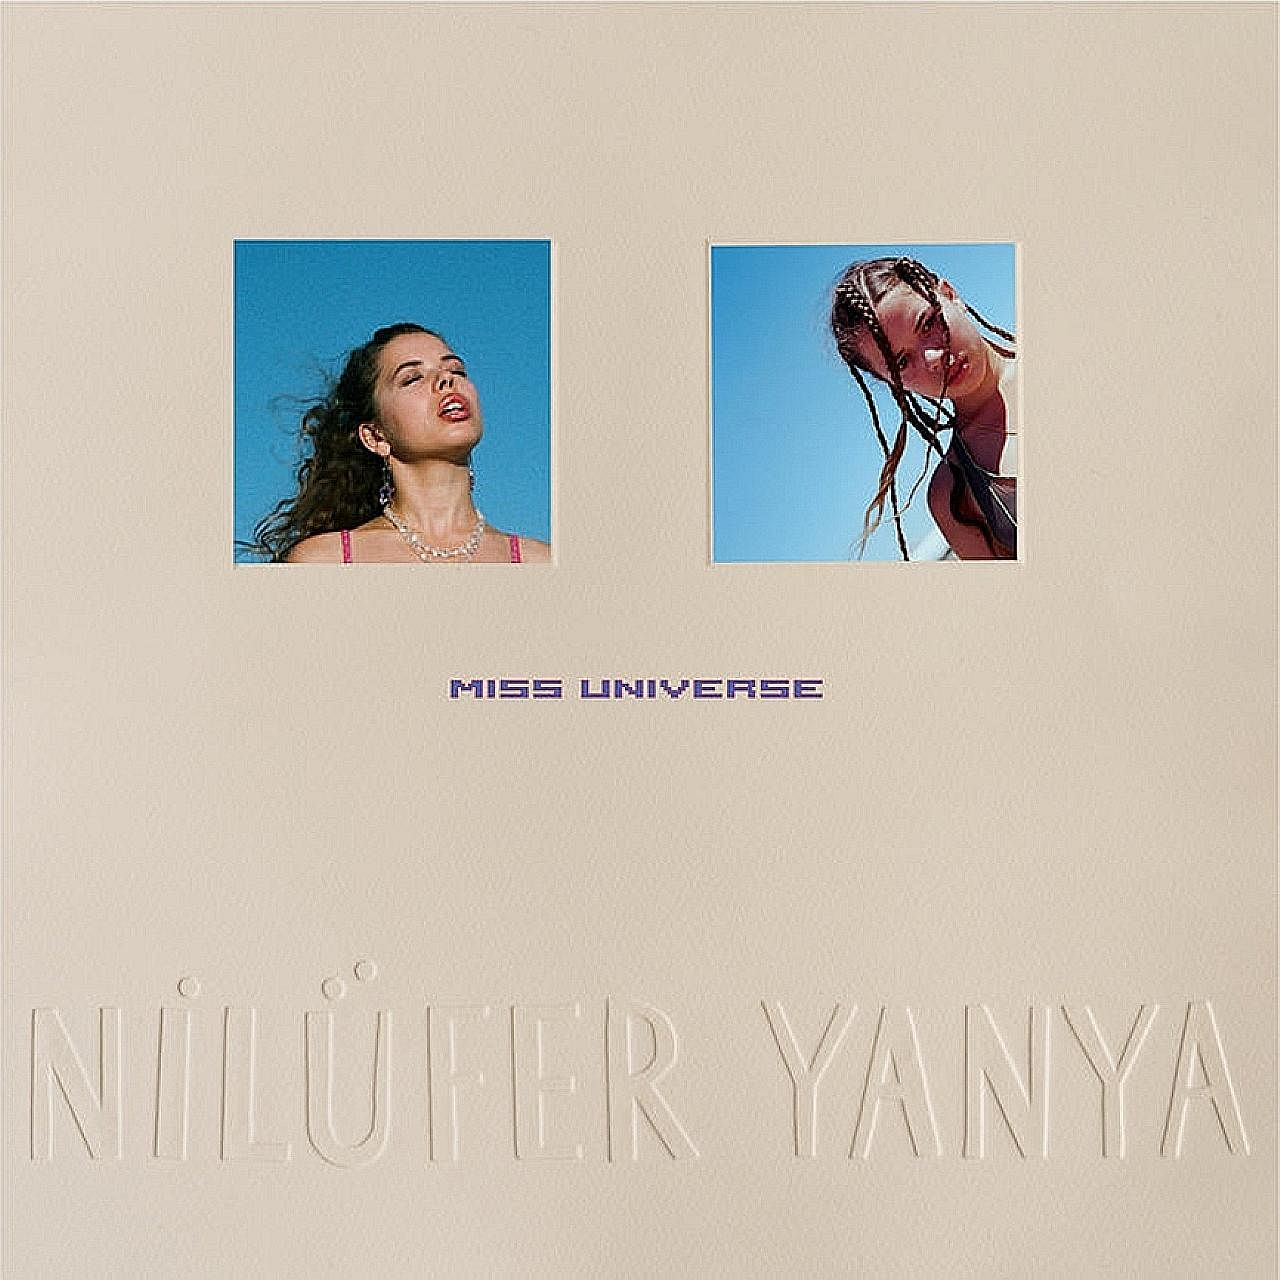 Nilufer Yanya (above) switches effortlessly between yearning urgency and insouciant cool while Jenny Lewis' (left) moody, bittersweet lyrics capture nostalgia and loss.